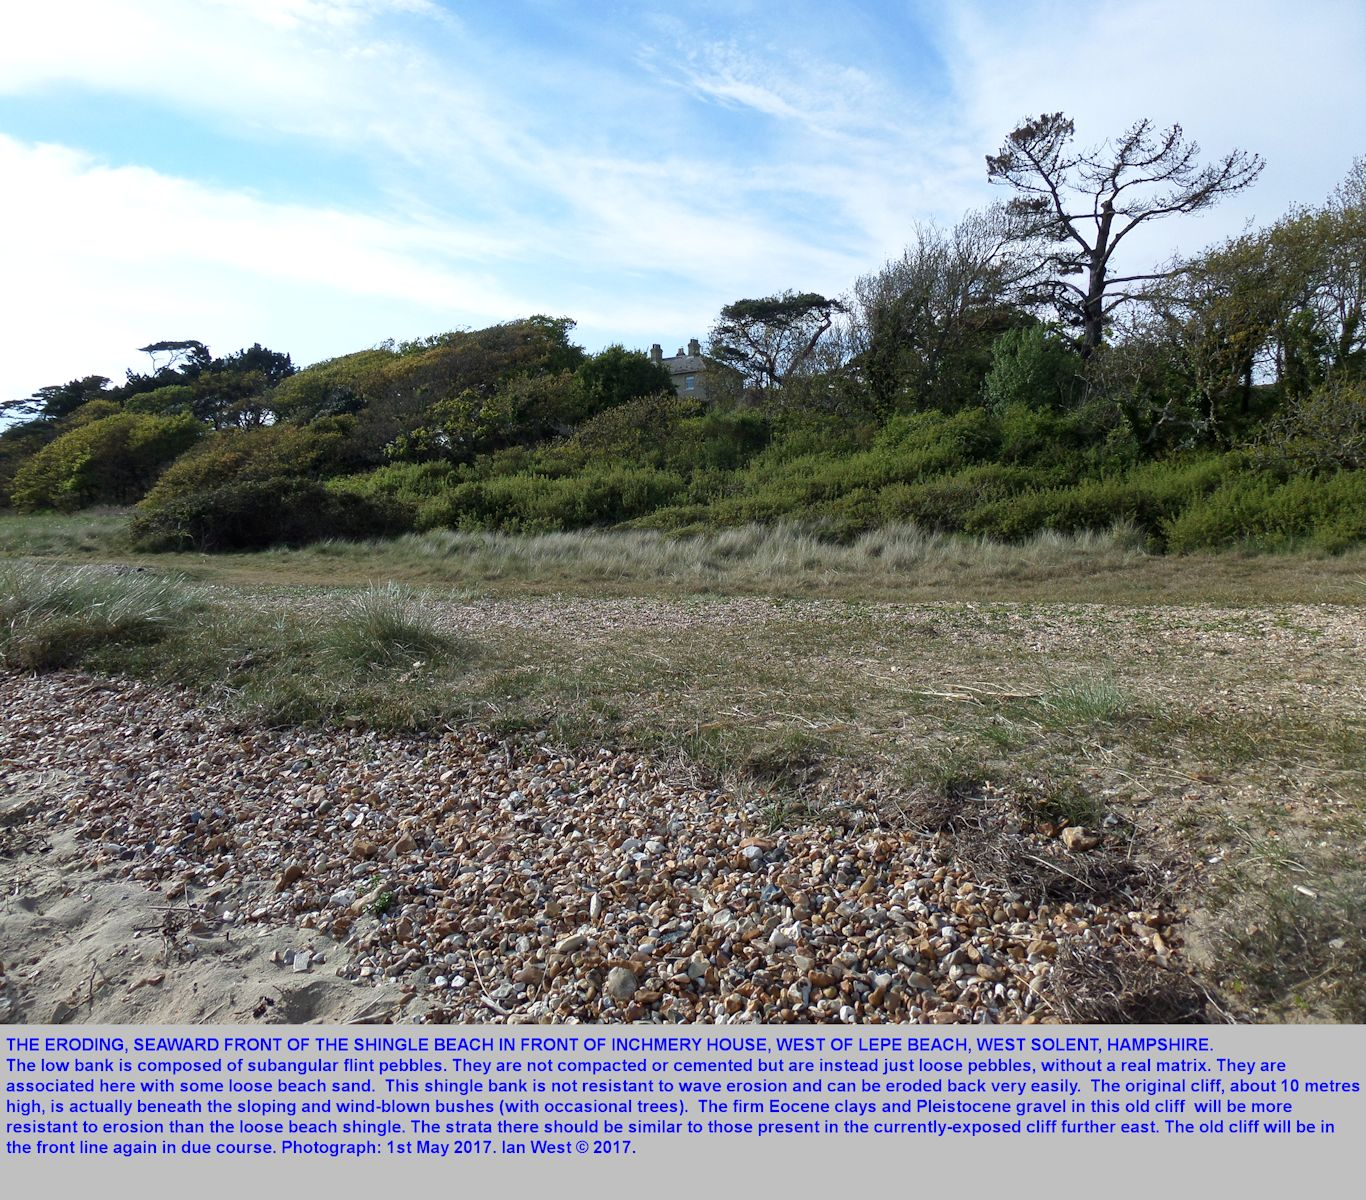 An oblique view of the remains of the curved shingle beach in front of Inchmery House, west of Lepe Beach, Hampshire, 1st May 2017